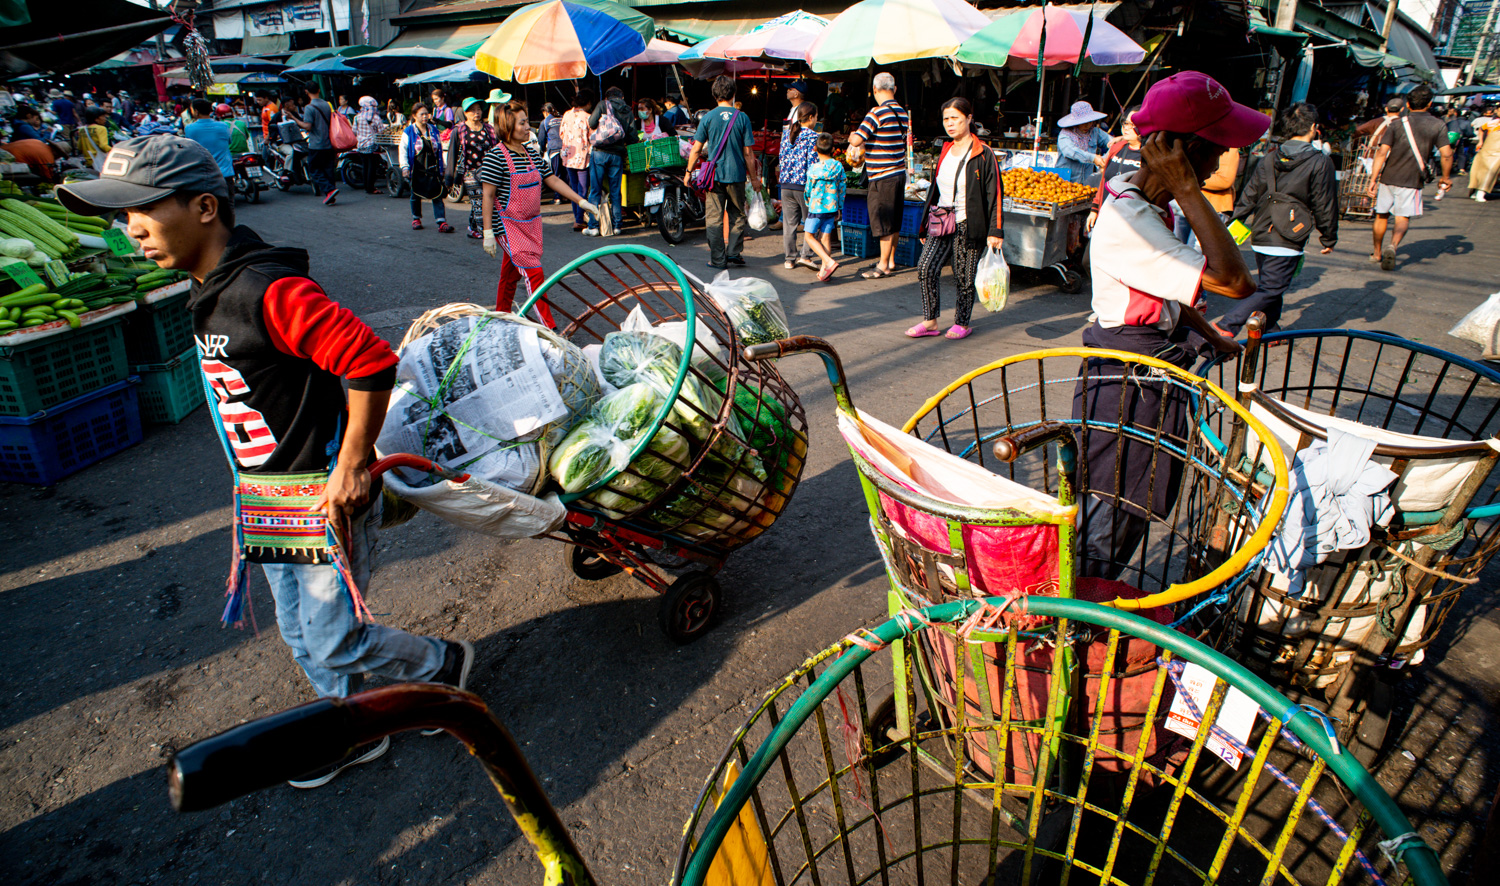 Muang Mai Market Documentary Travel Photography: How to Add More Interest to Your Travel Photos